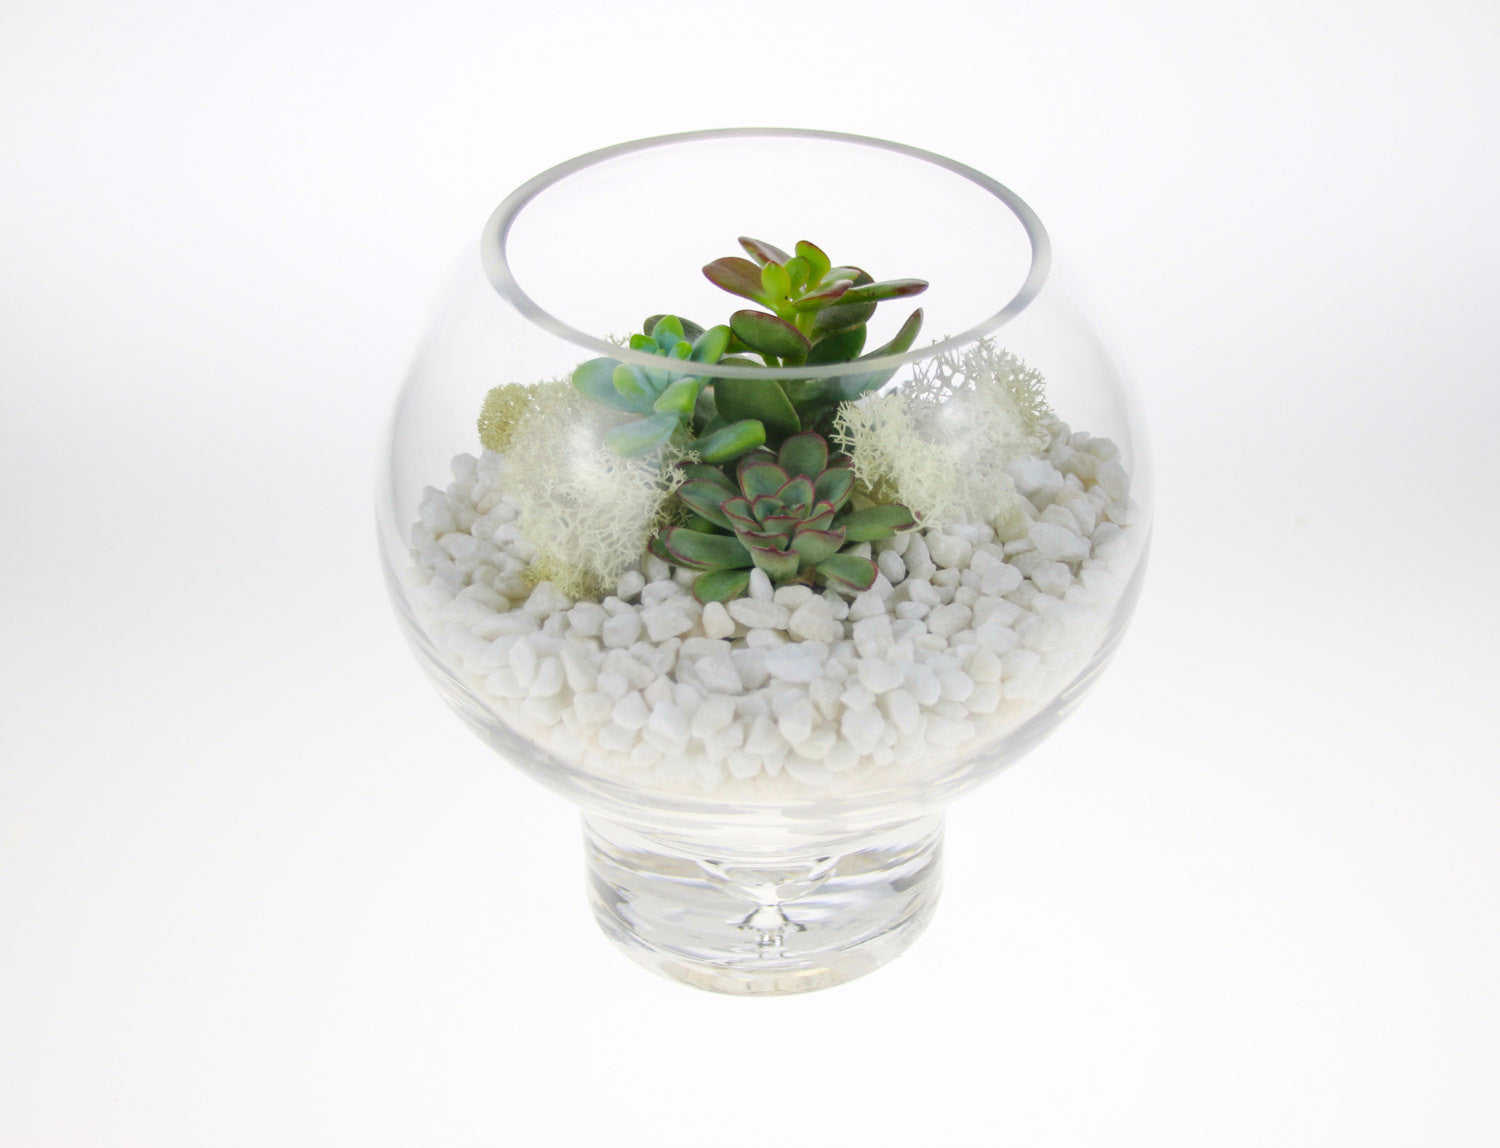 Miniature Glass Sphere Diy Terrarium Kit With Living Succulents